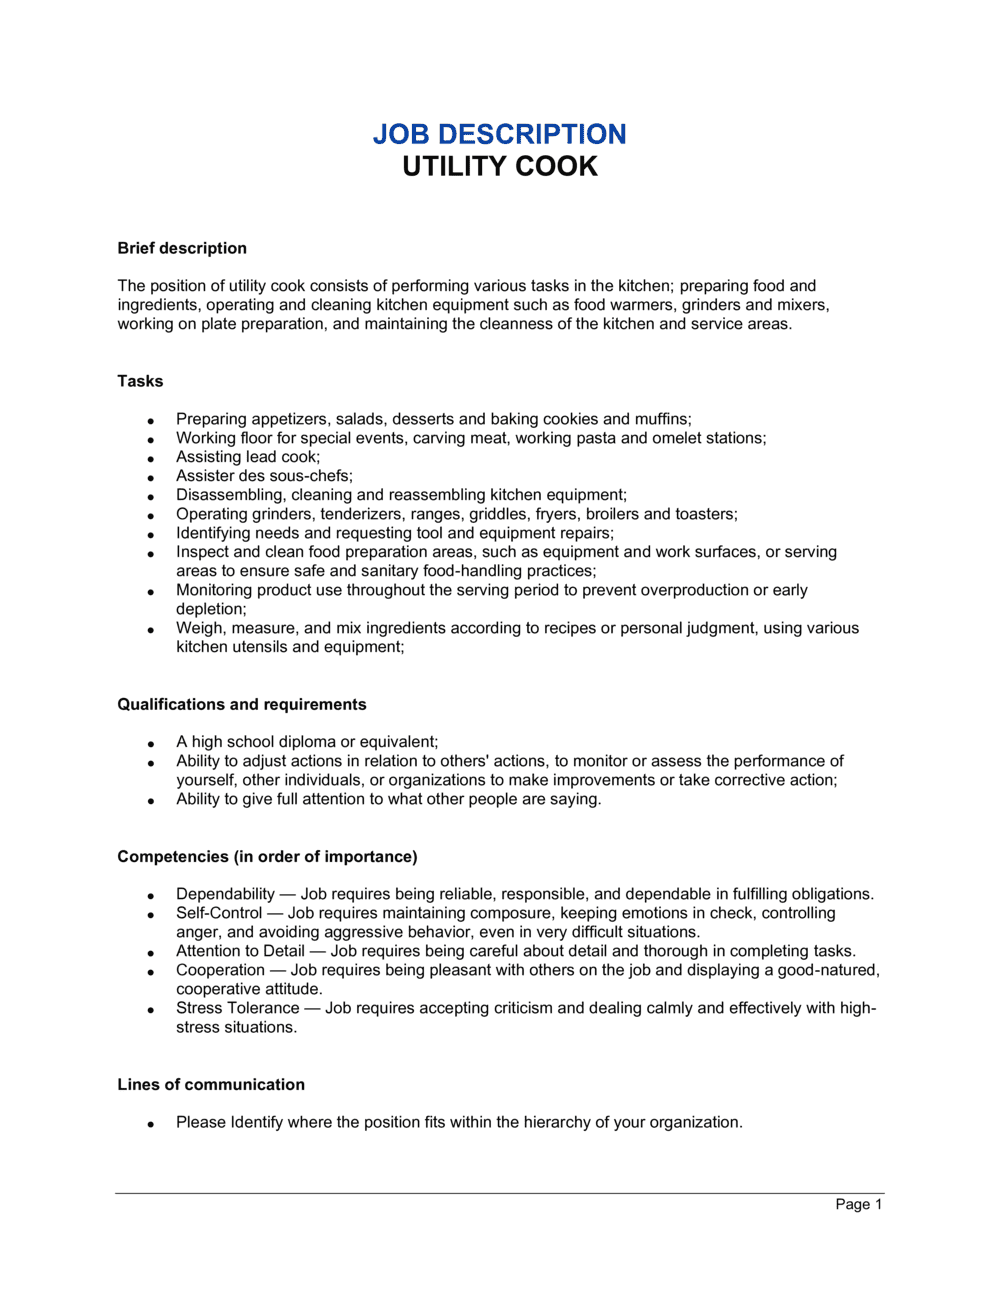 Business-in-a-Box's Utility Cook Job Description Template